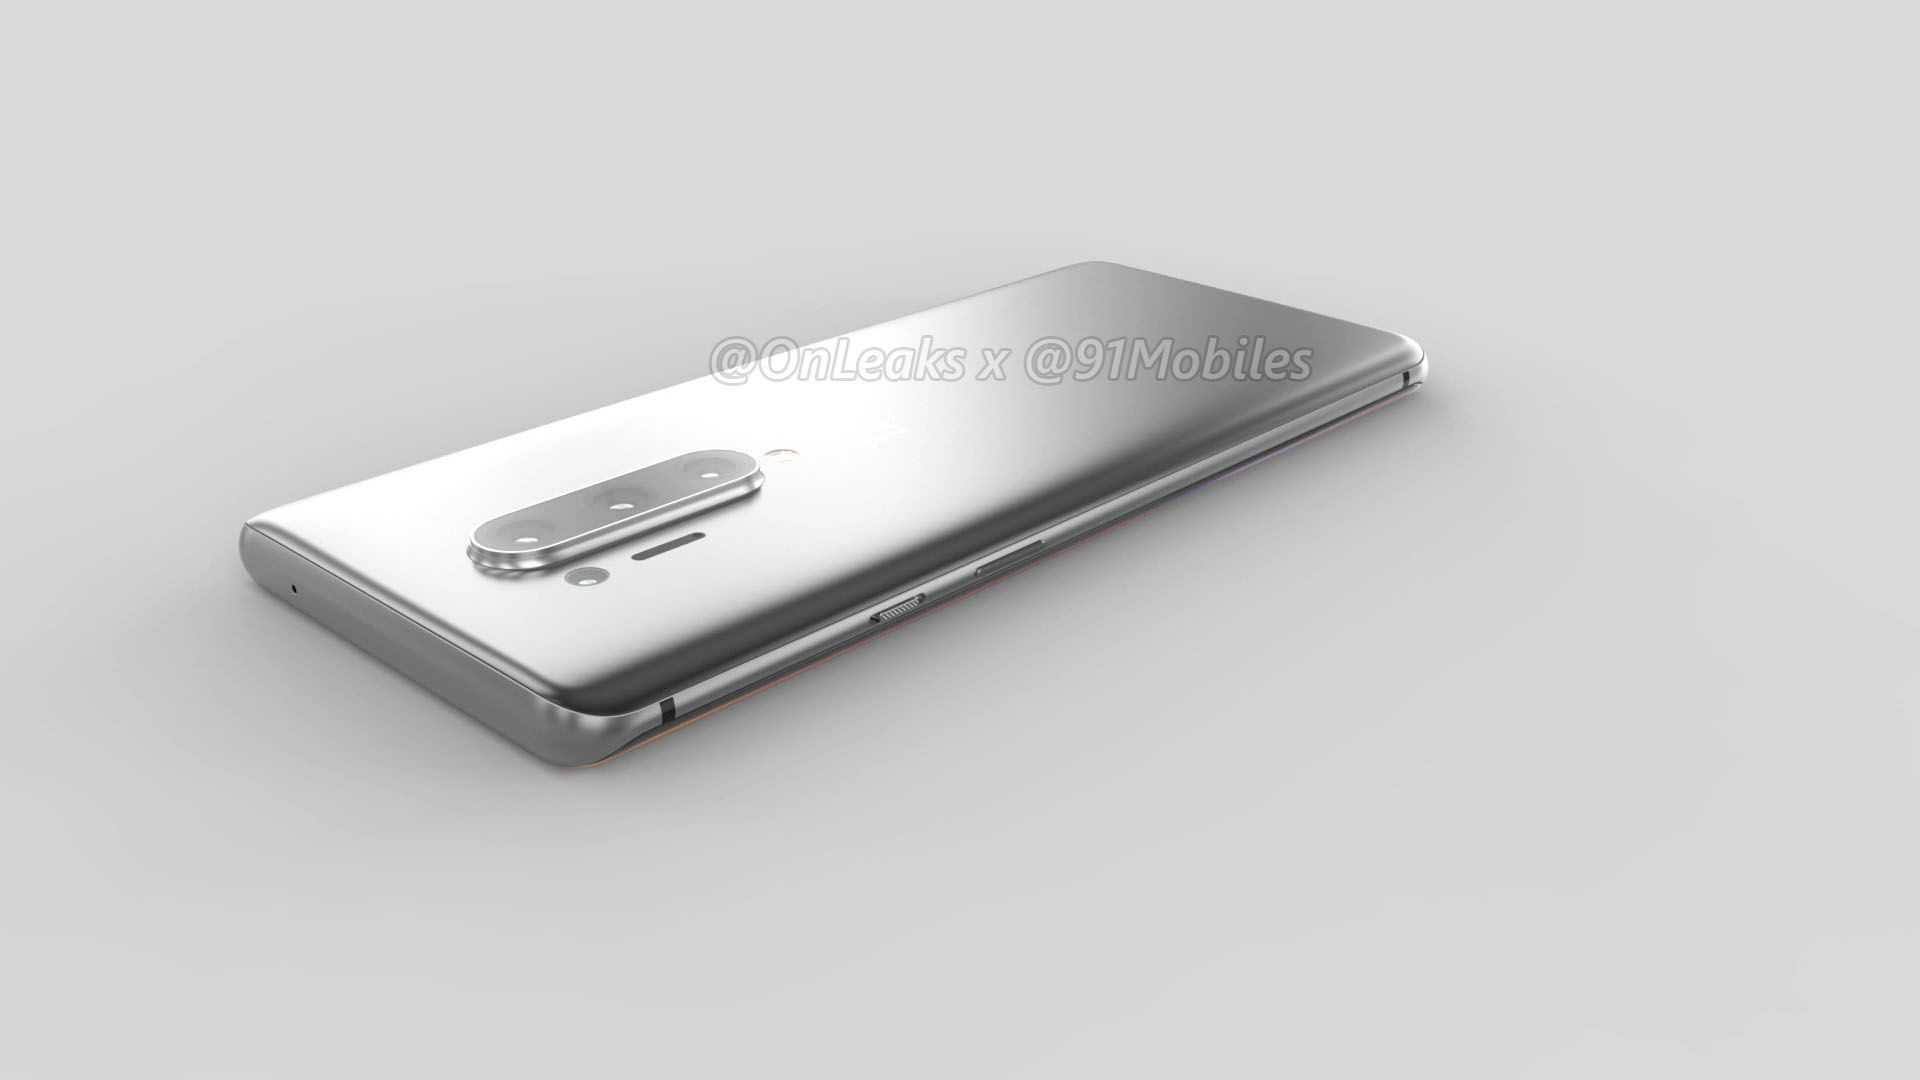 renders of OnePlus 8 Pro  - image 4